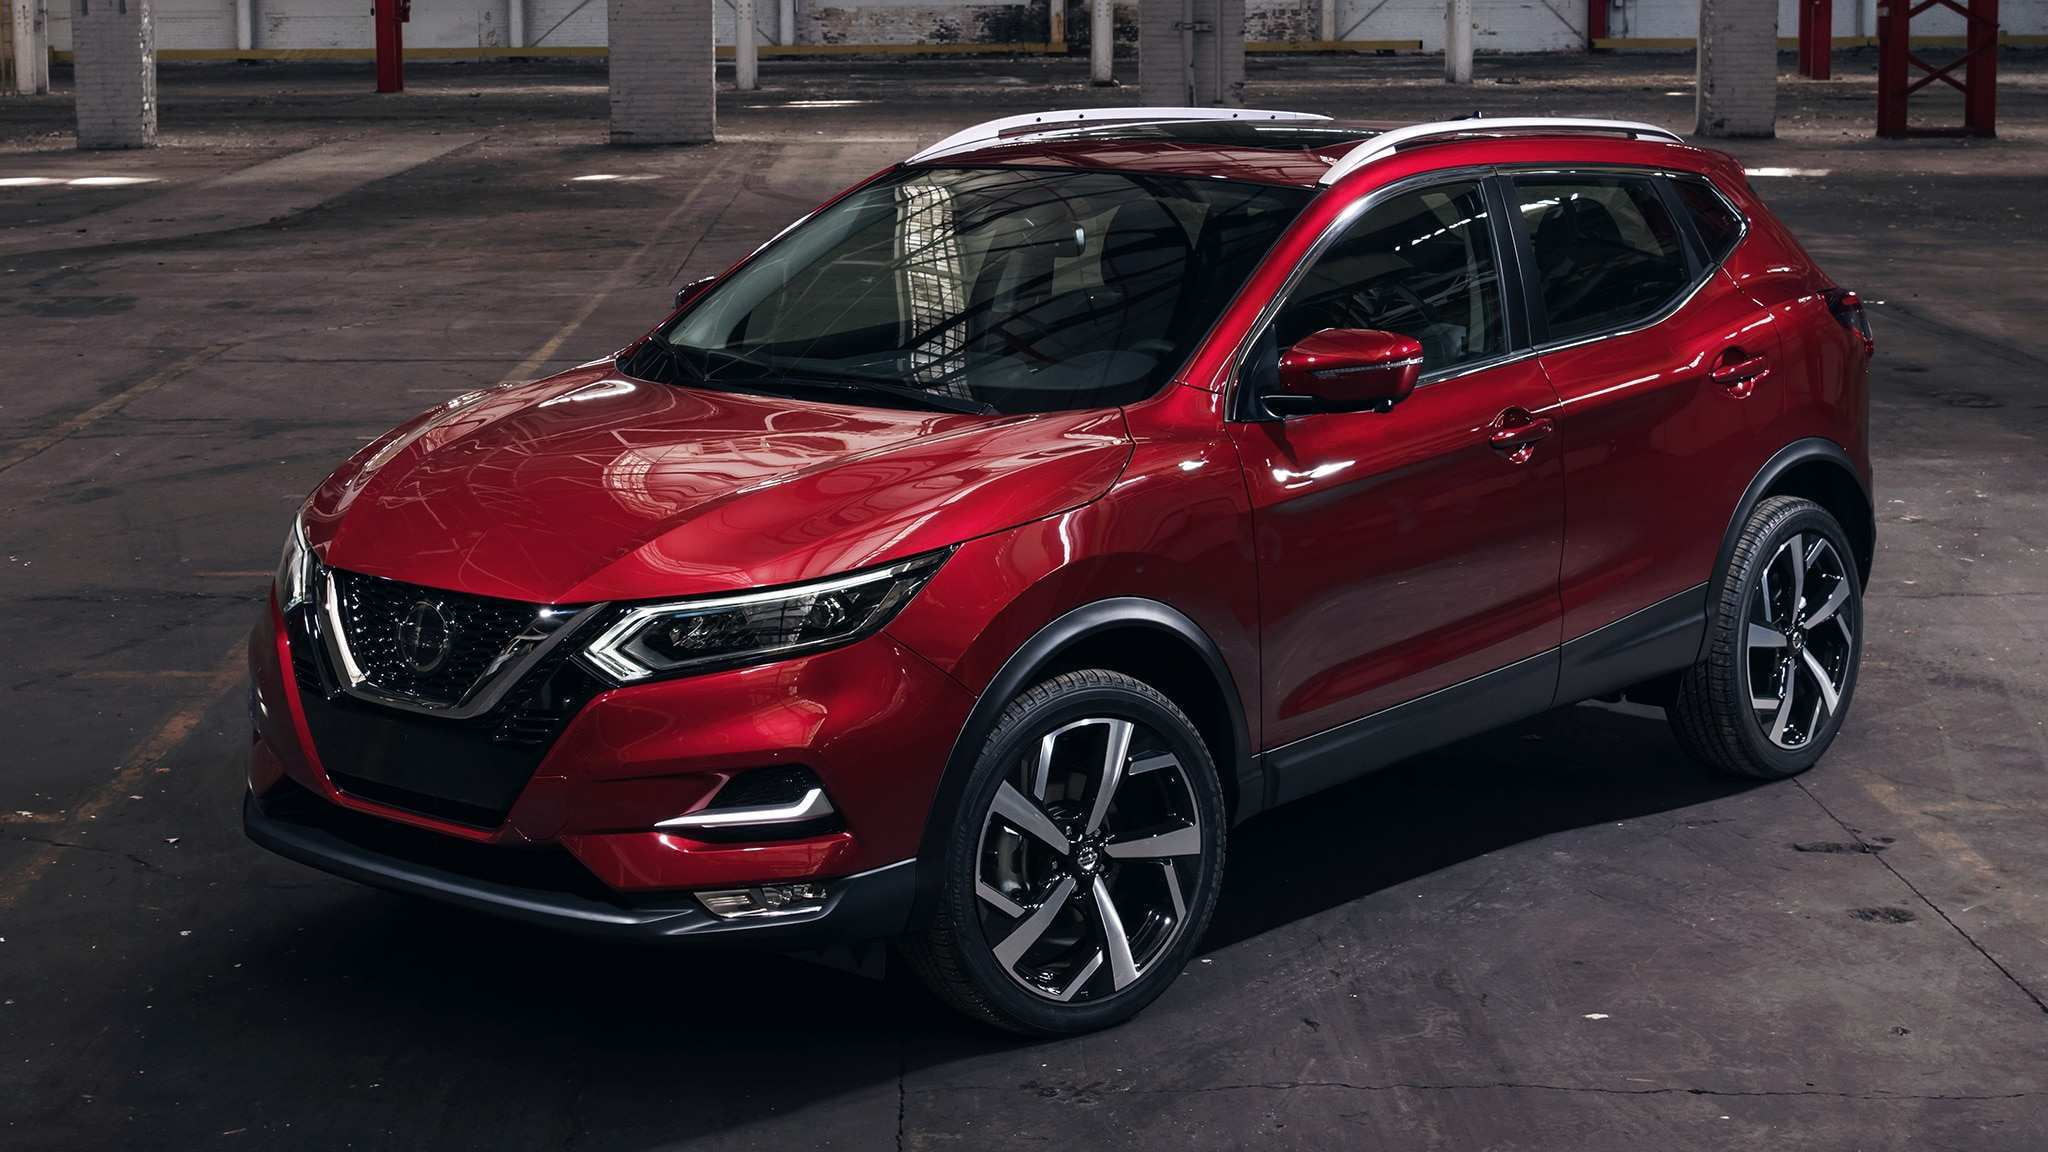 96 A Nissan Rogue 2020 Canada Price And Release Date